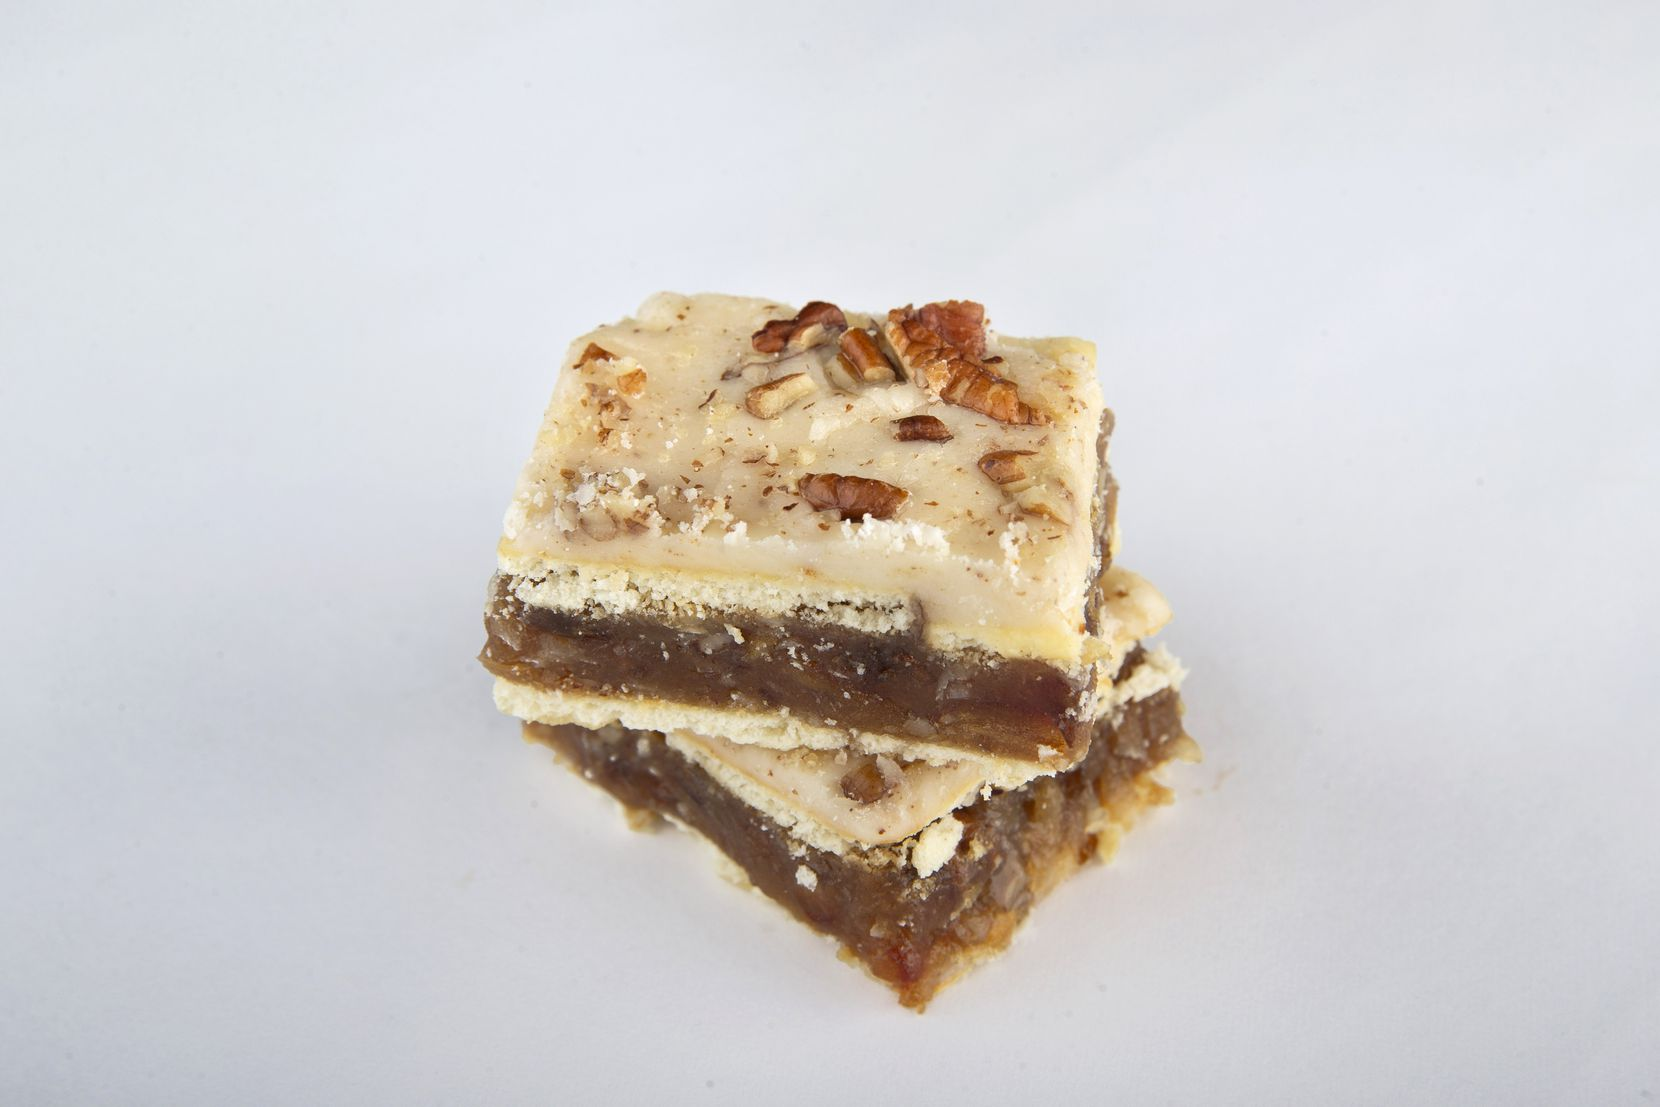 The no-bake coconut date cracker bars with browned butter glaze made by Vicki Carlisle won third place in the cookie bar category.